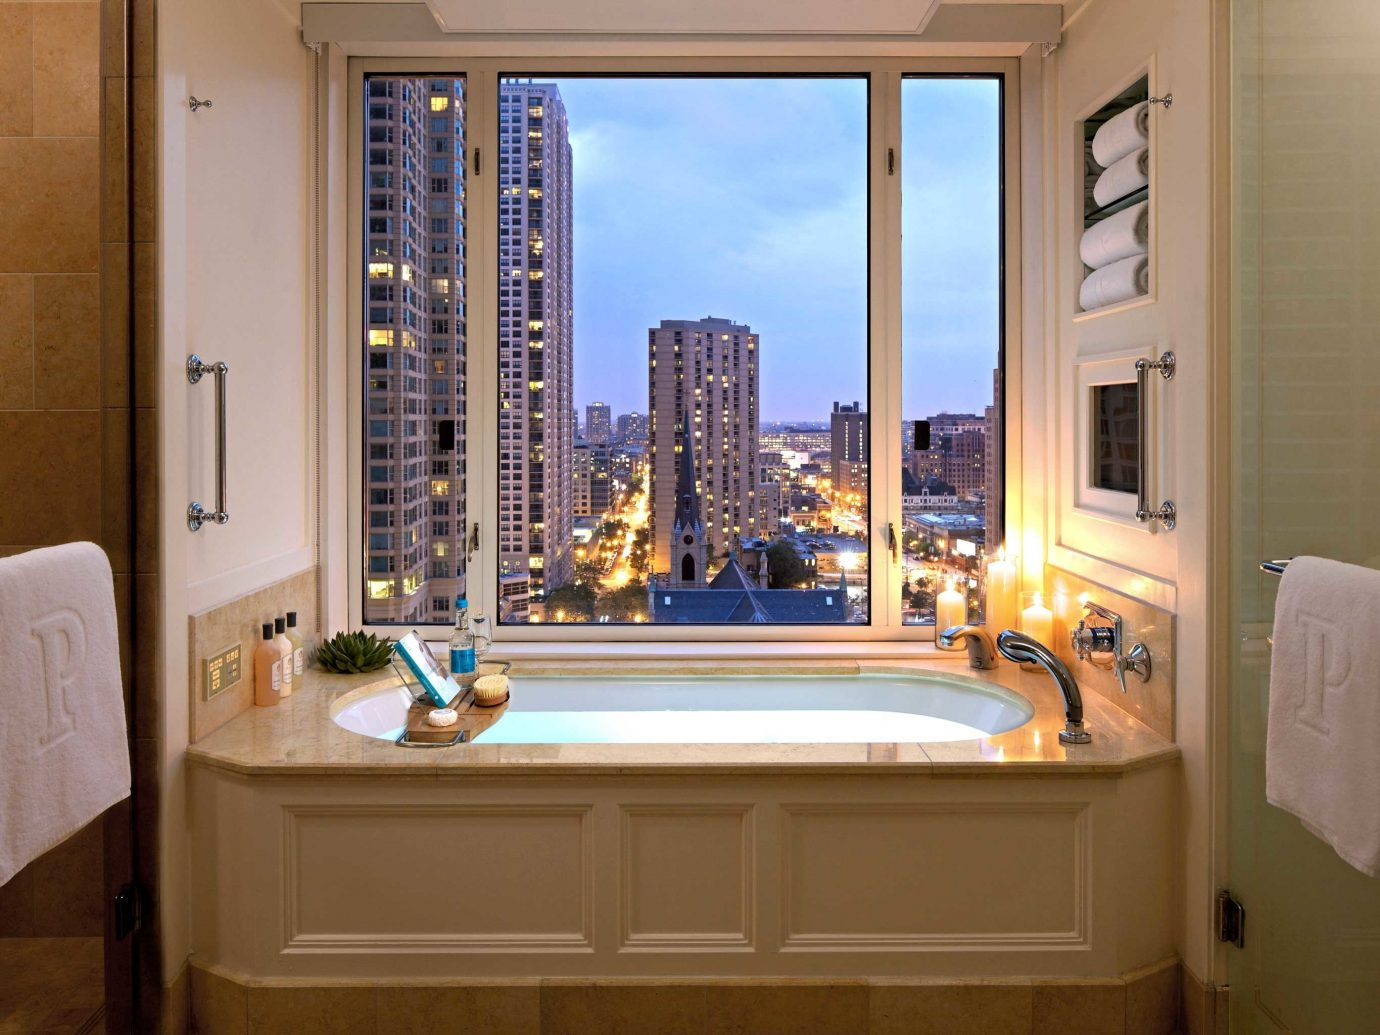 Bath City Hotels Scenic views wall indoor window bathroom room property estate home house interior design floor mansion Suite real estate swimming pool Design cottage apartment Kitchen living room